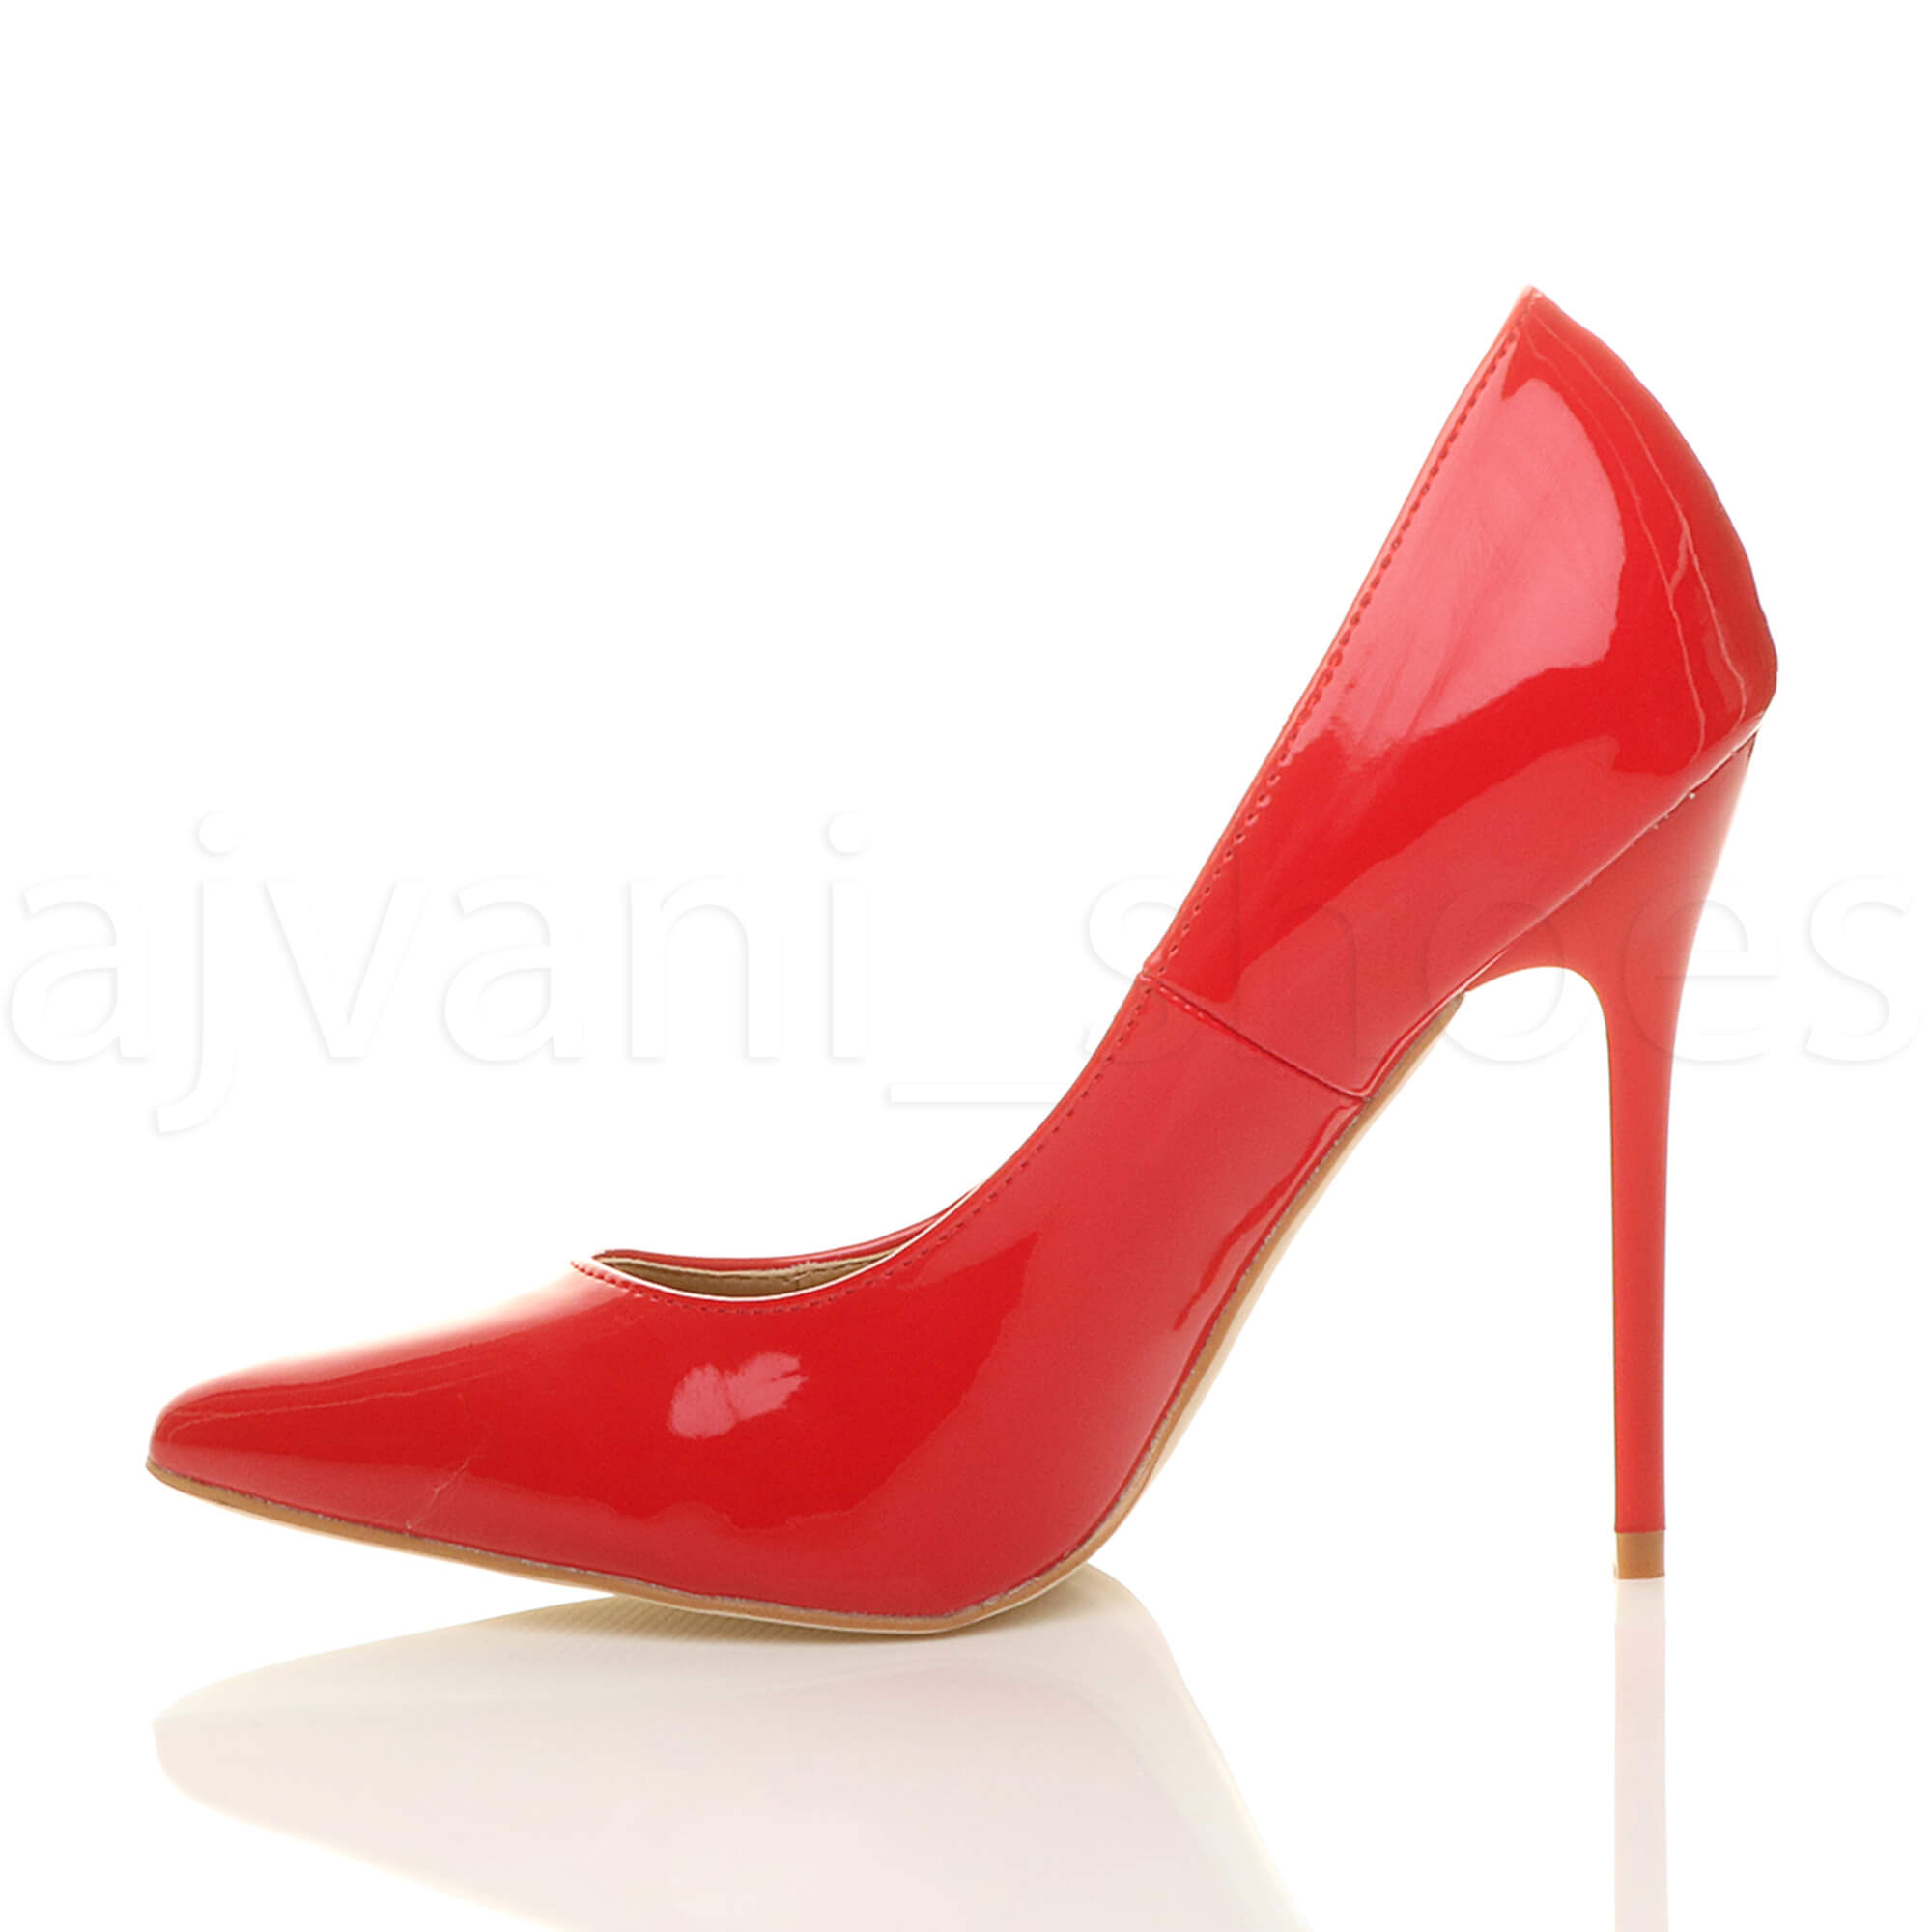 WOMENS-LADIES-HIGH-HEEL-POINTED-CONTRAST-COURT-SMART-PARTY-WORK-SHOES-PUMPS-SIZE thumbnail 178